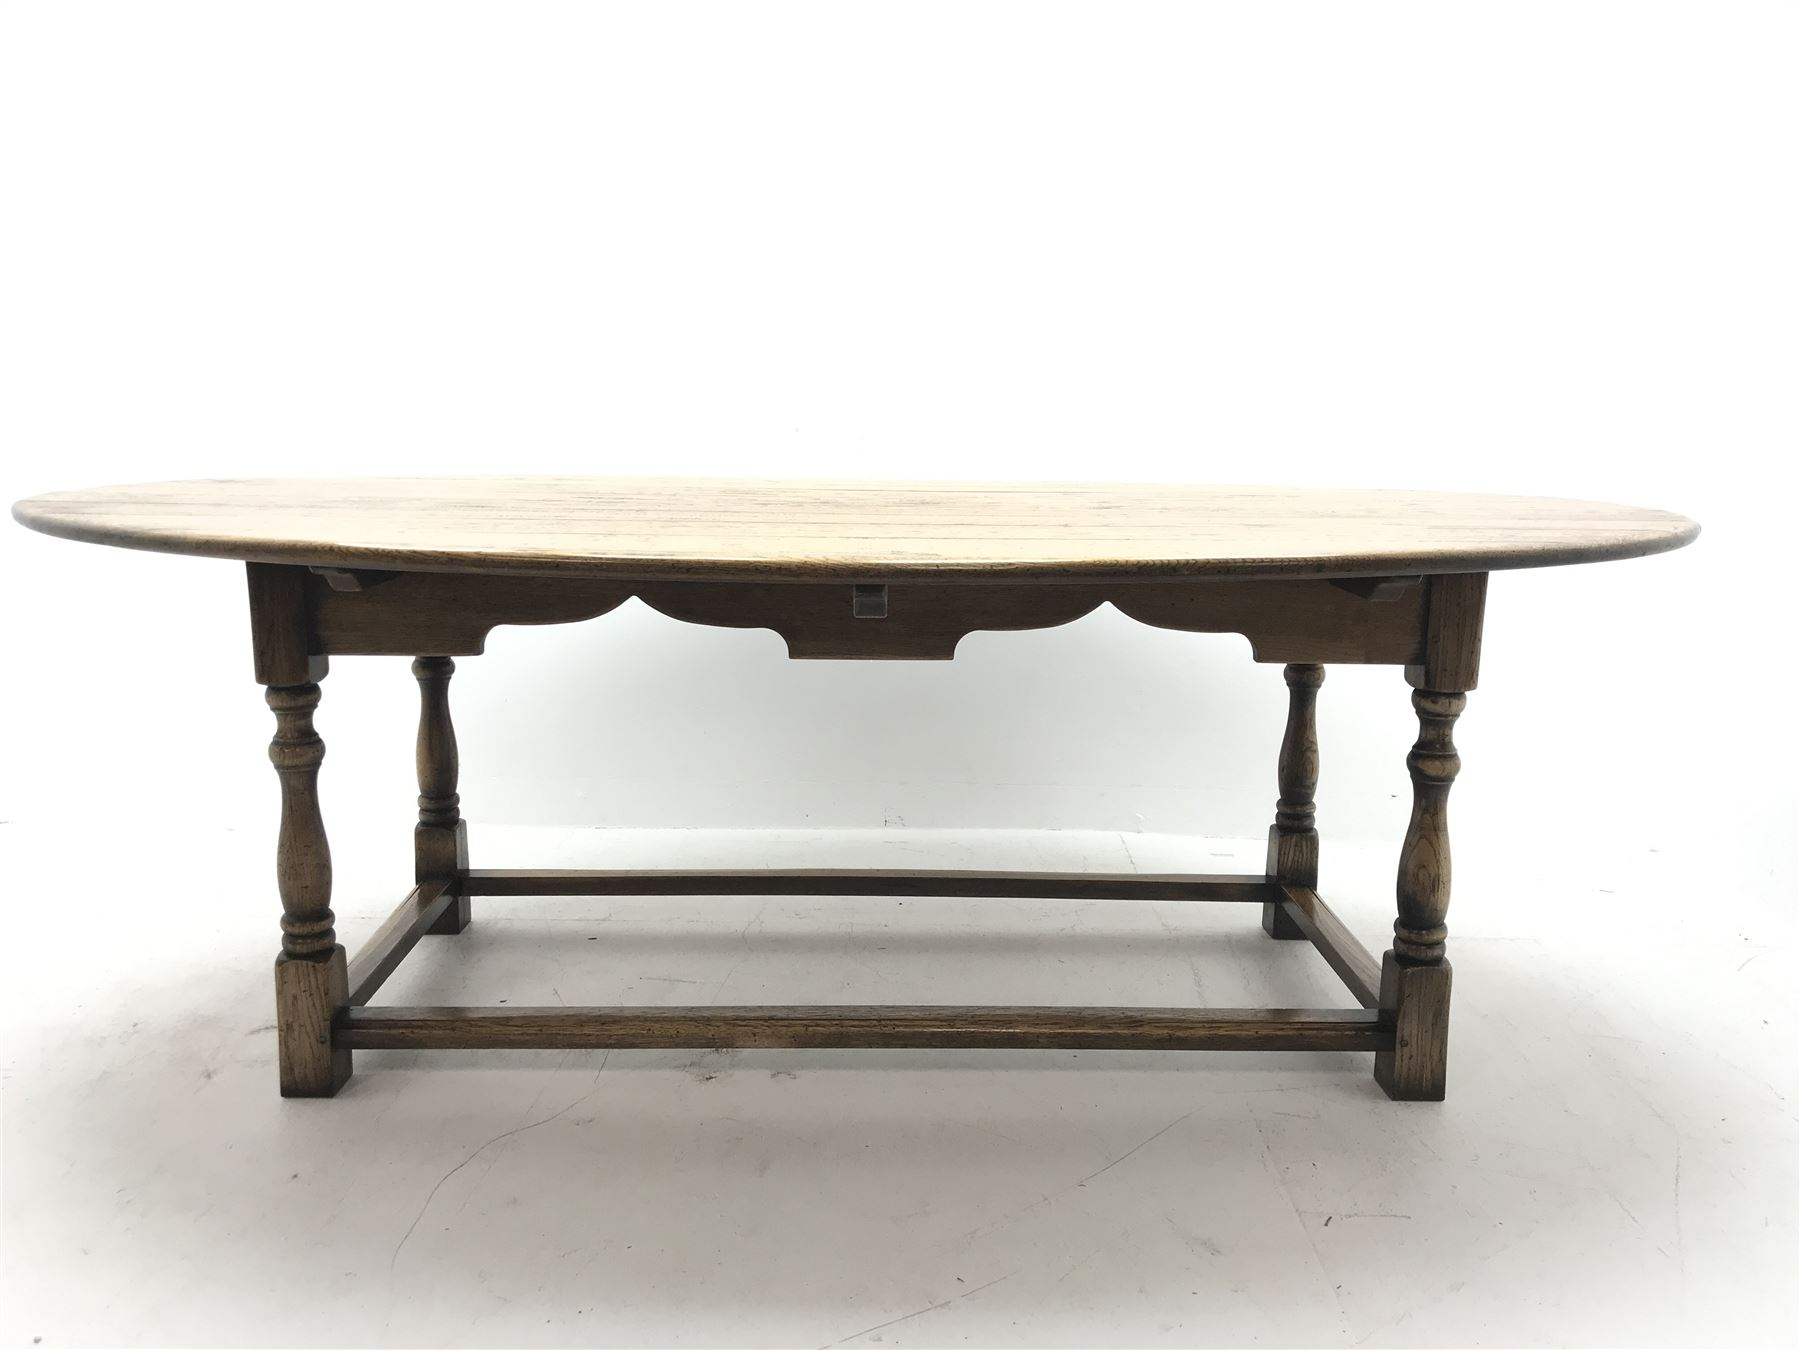 17th century style oval distressed light oak plank top dining table - Image 4 of 5